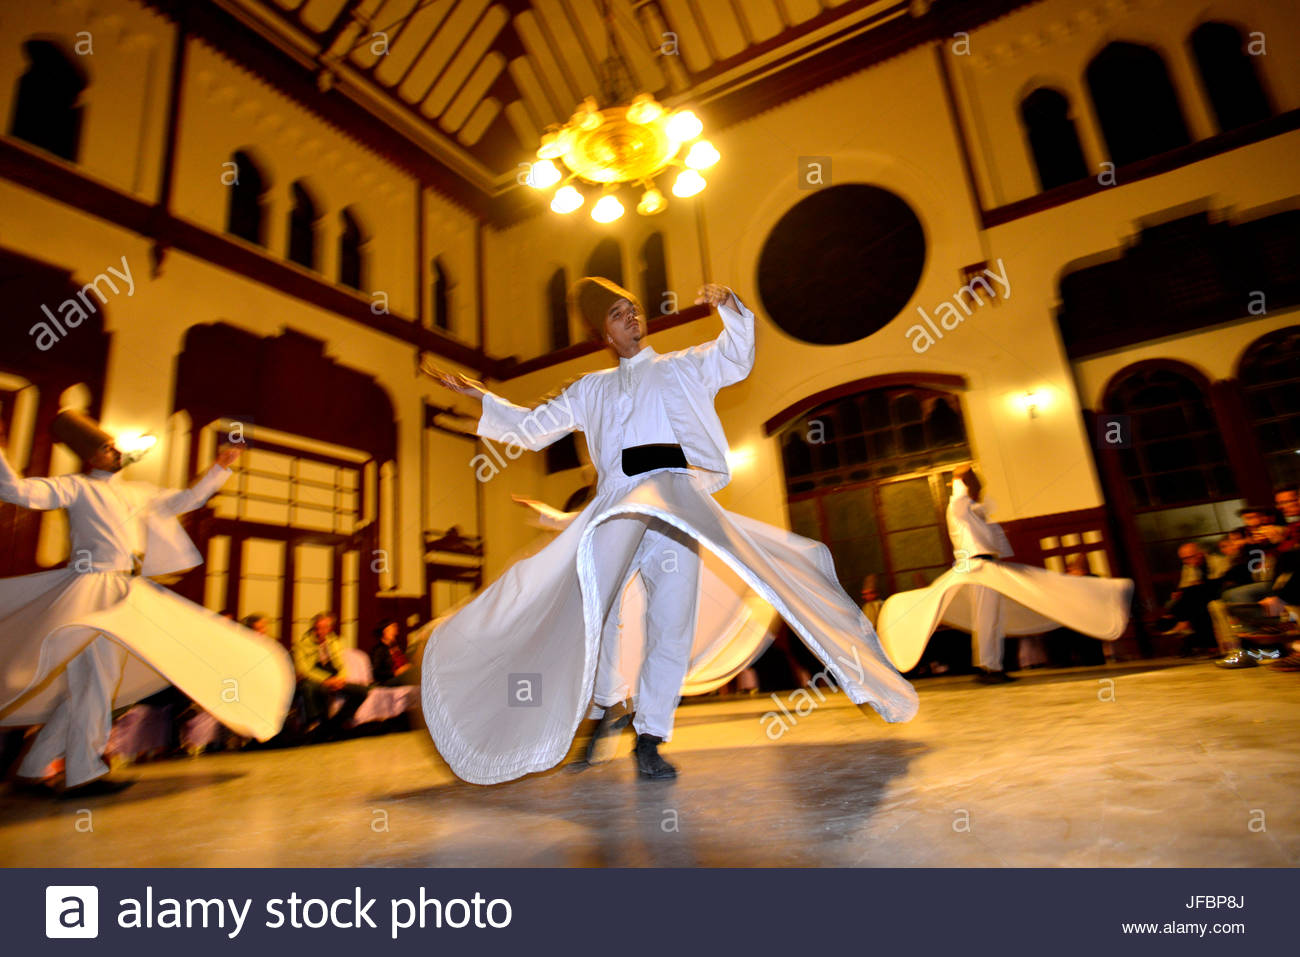 Members of the Mevlevi Sufi Order, whirling dervishes perform at the Sirkeci Central Train Station. - Stock Image